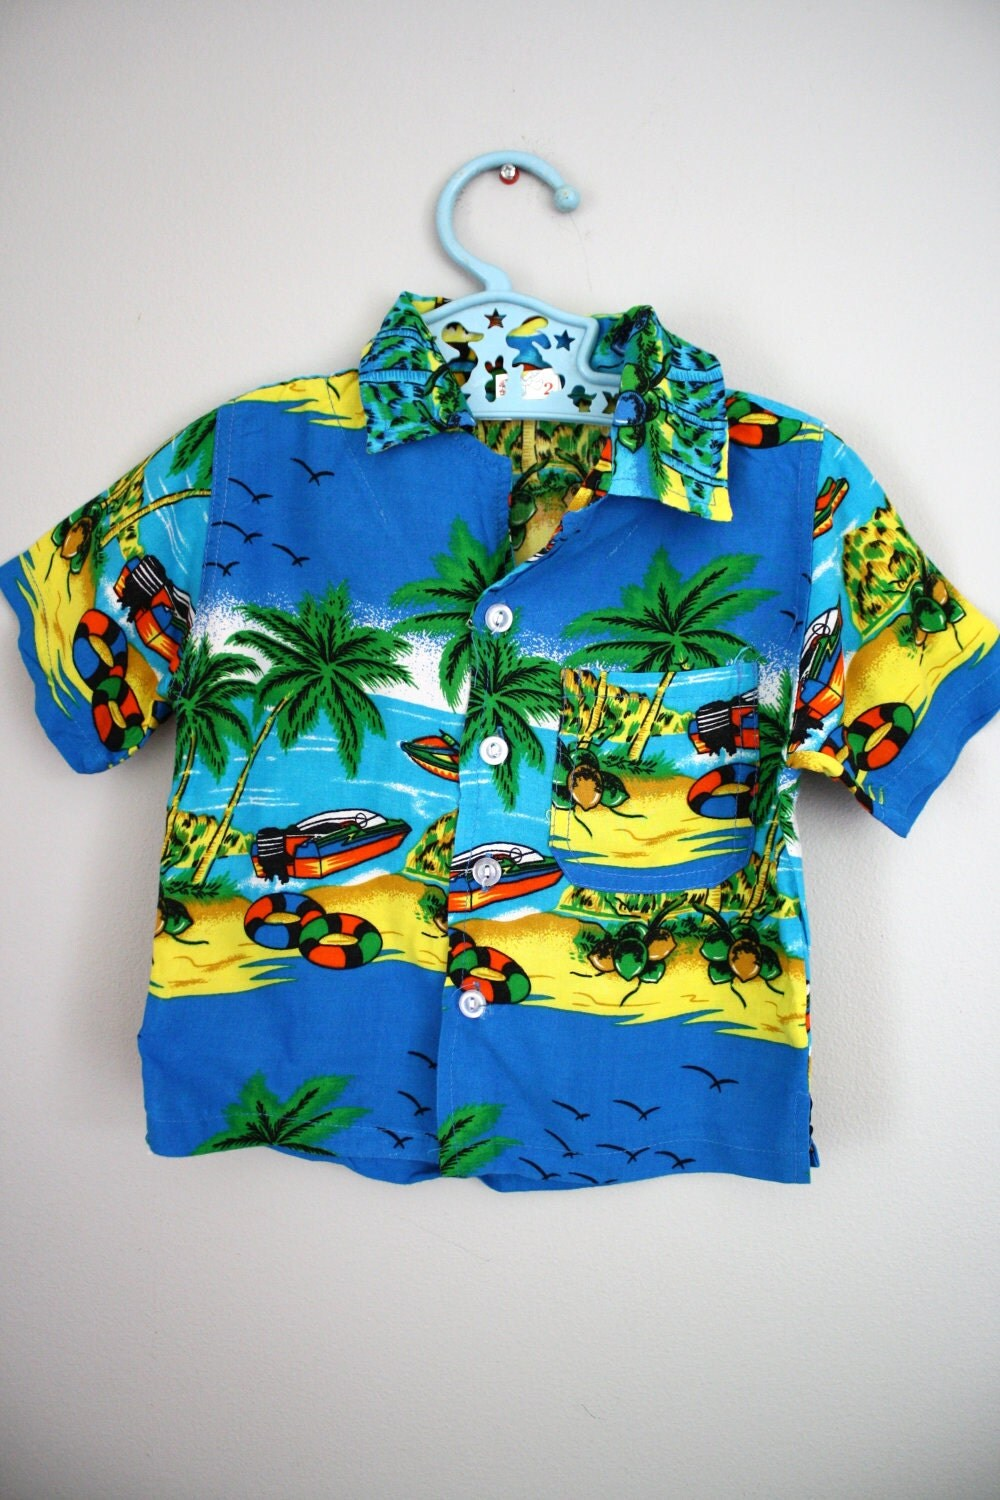 Shop for Hawaiian Baby Clothes & Accessories products from baby hats and blankets to baby bodysuits and t-shirts. We have the perfect gift for every newborn.